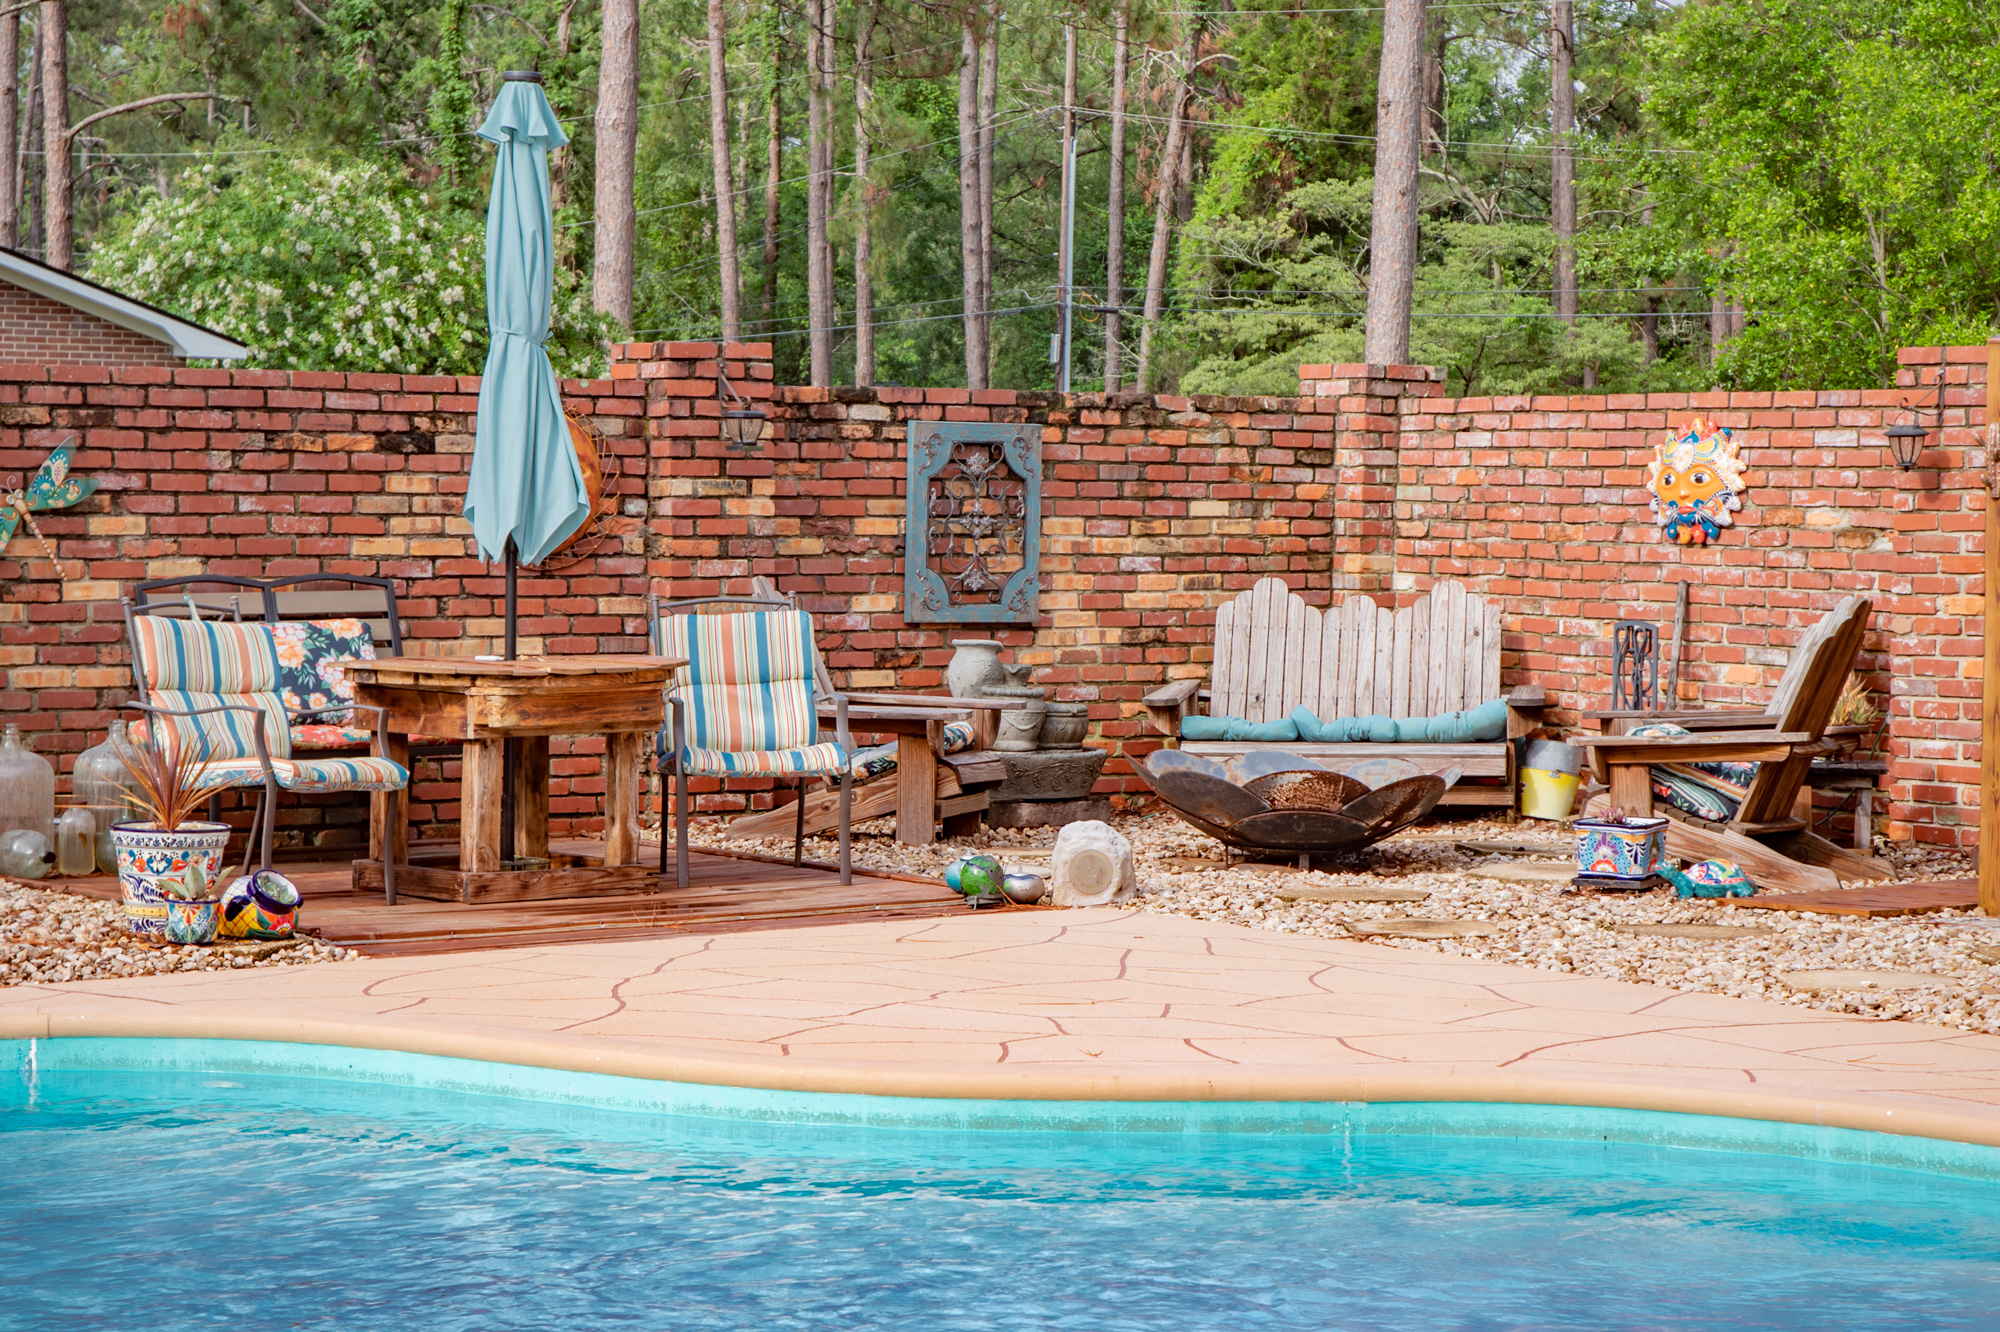 Space for Entertaining - You wont run out of room at family gatherings or pool parties. It's the ideal place to hang out and keep an eye on the kids in the pool.